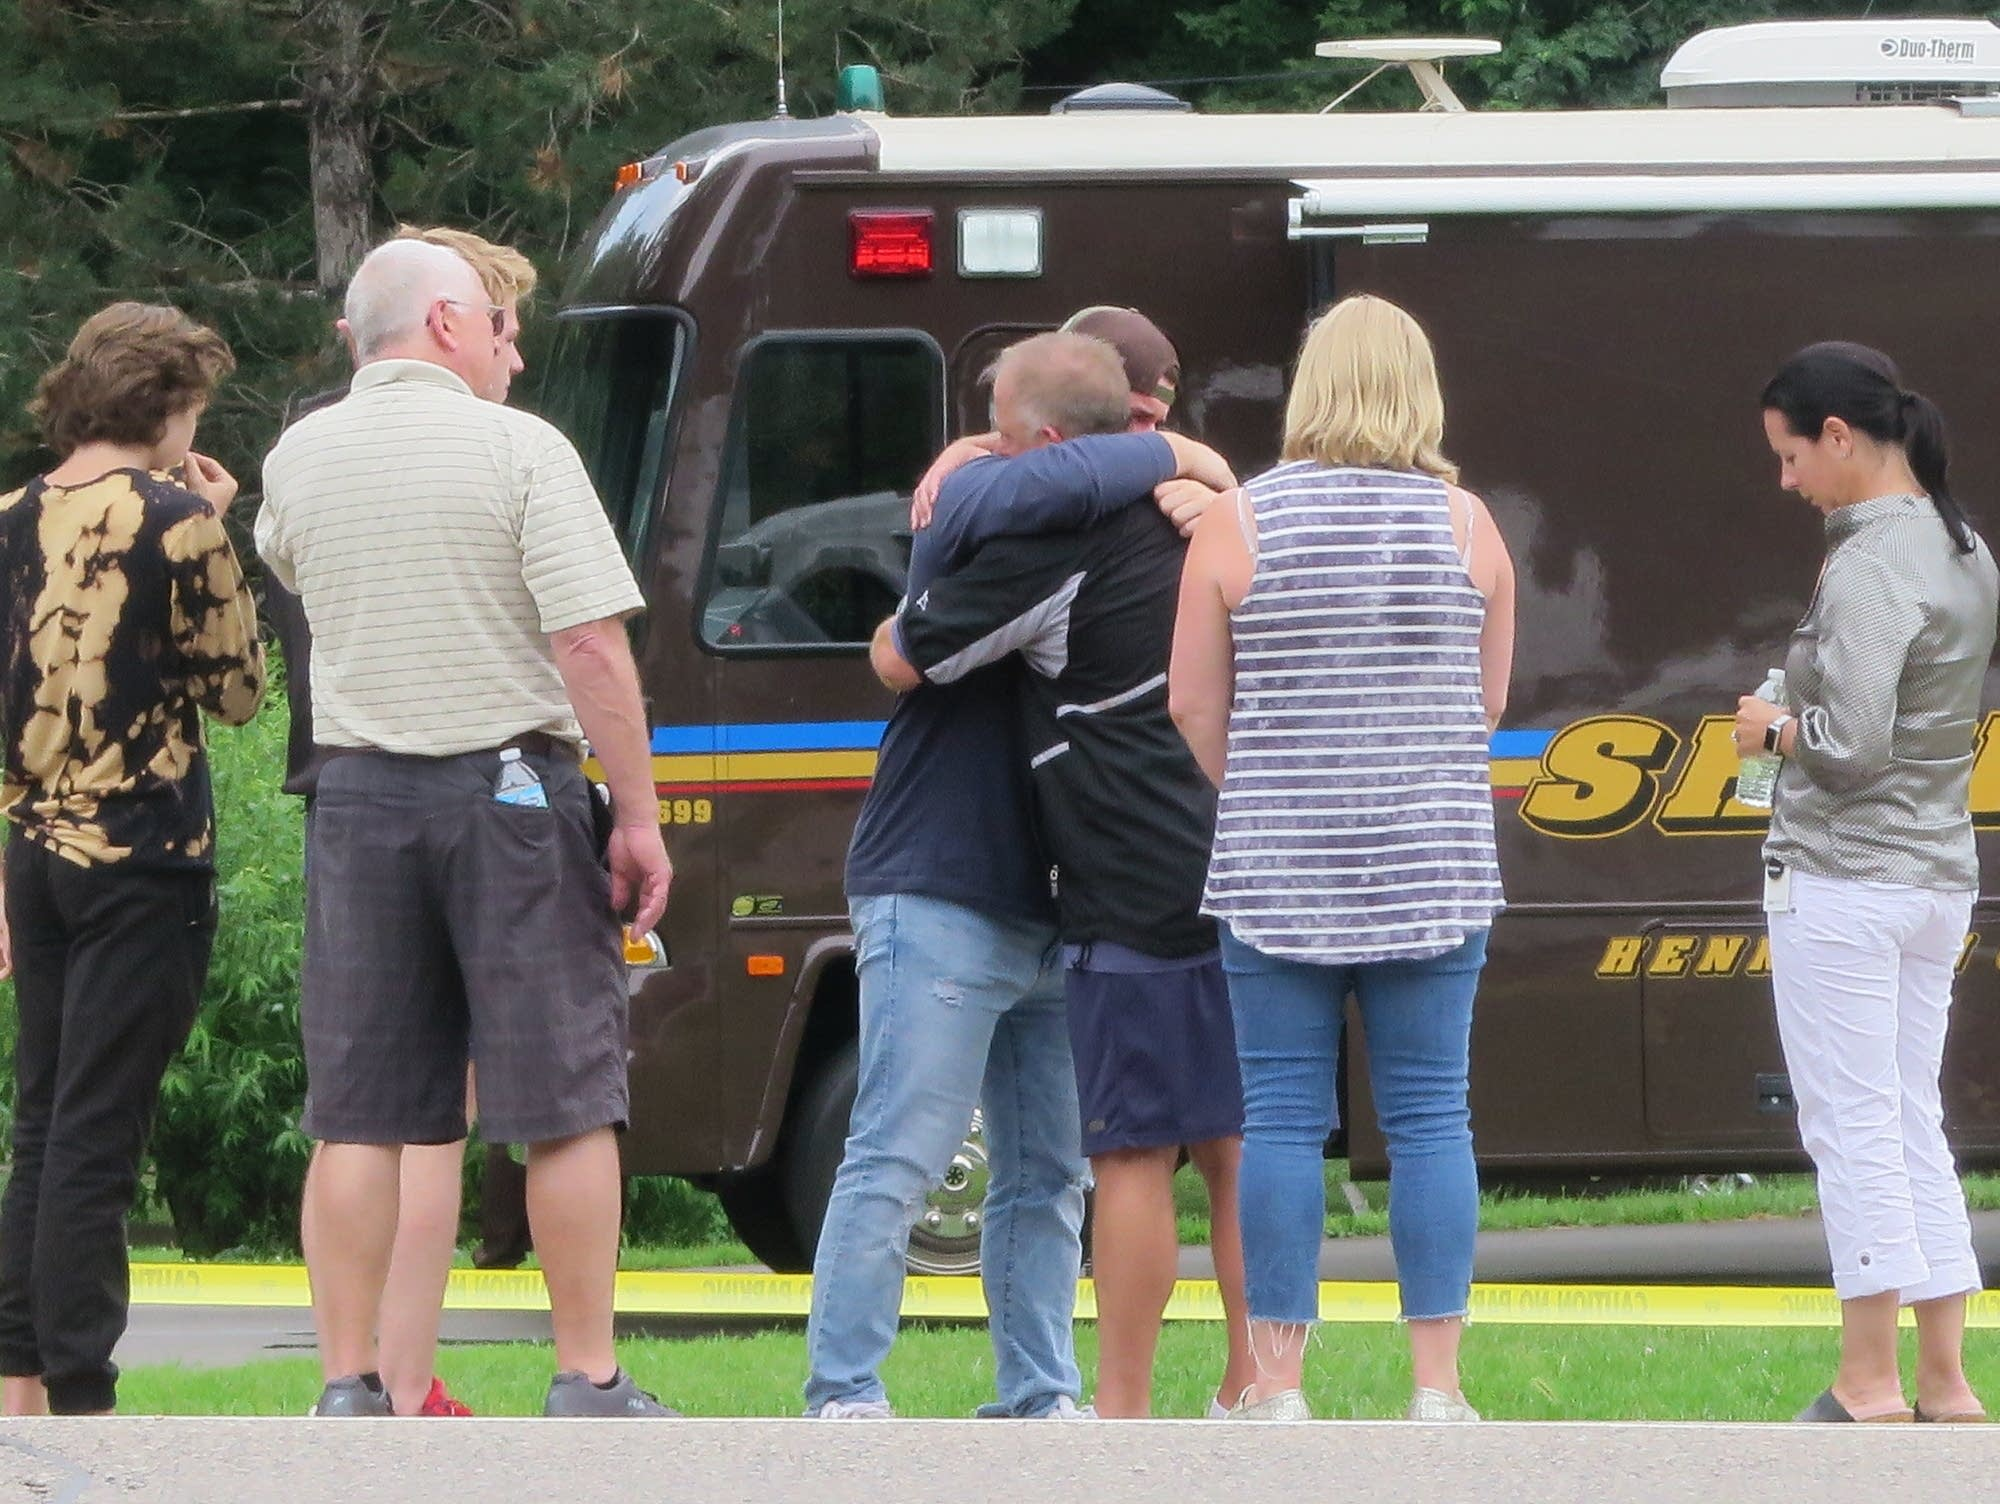 People mourn by Hwy. 7 on July 13, near where deputies shot Archer Amorosi.